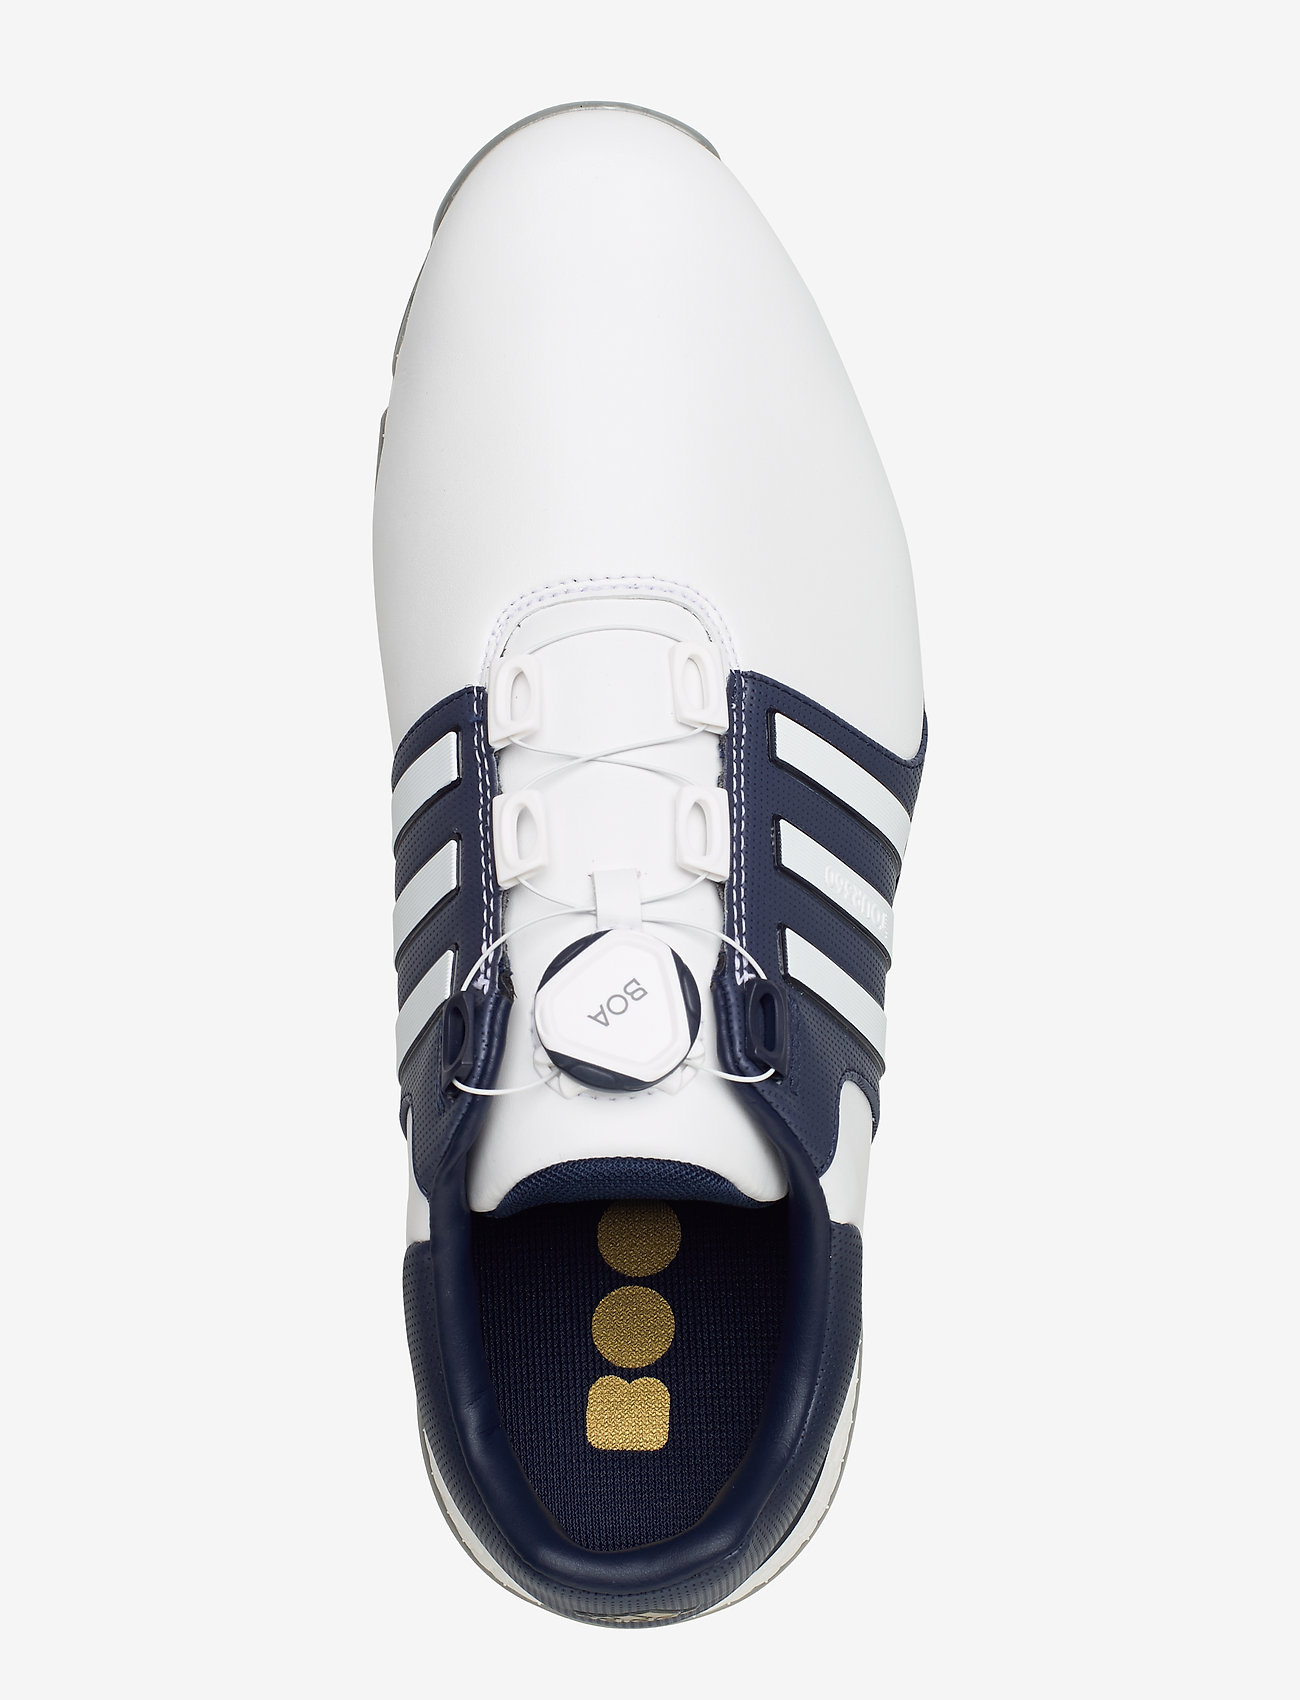 Tour360 Xt-sl Boa (wide) - adidas Golf